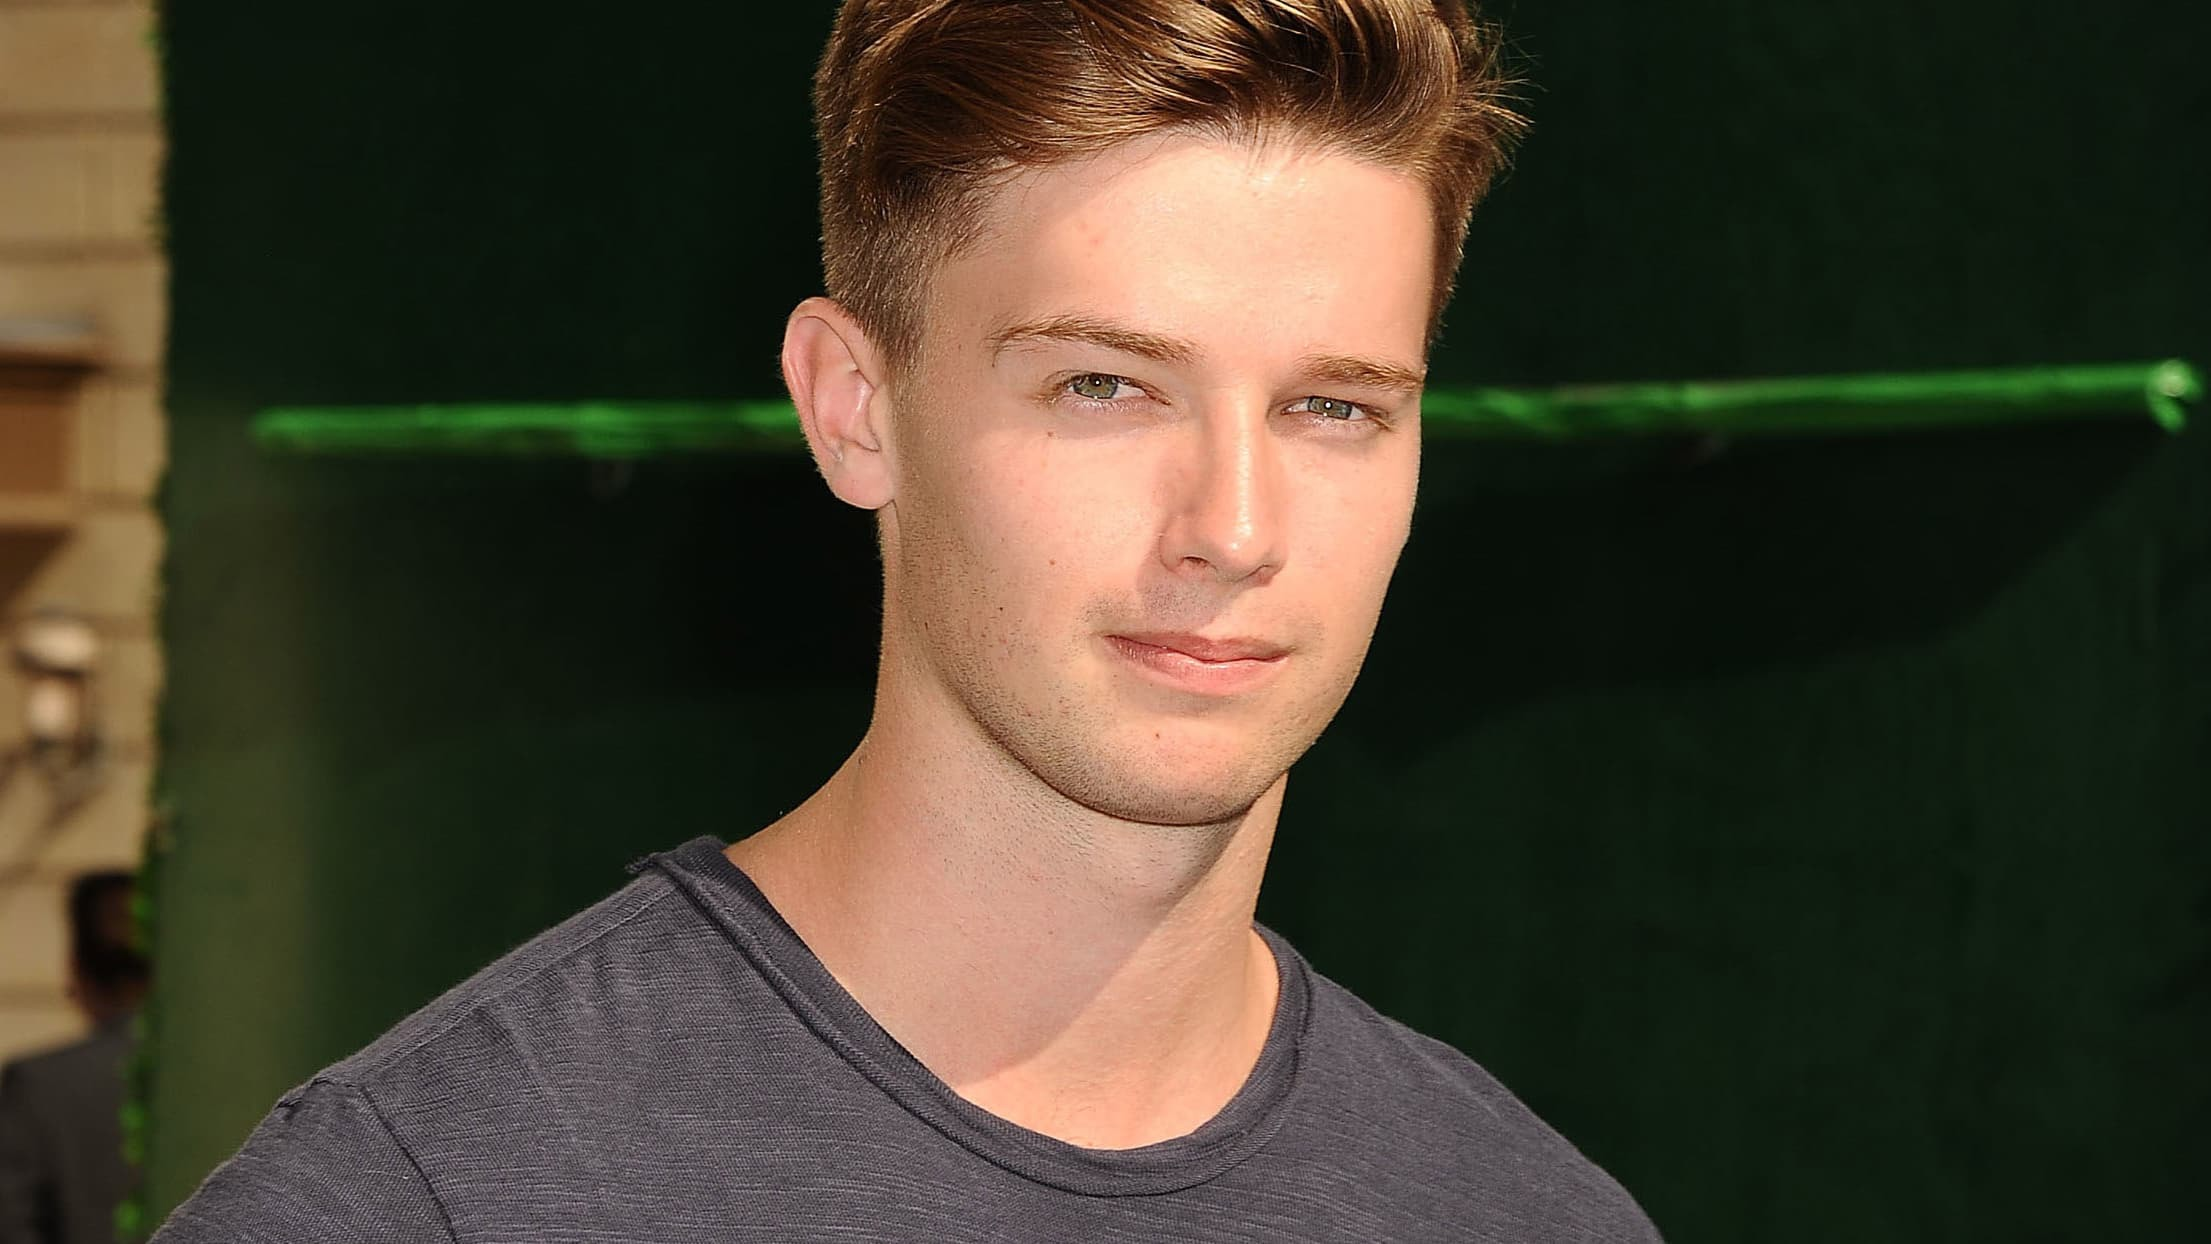 Patrick Schwarzenegger Wallpapers Images Photos Pictures